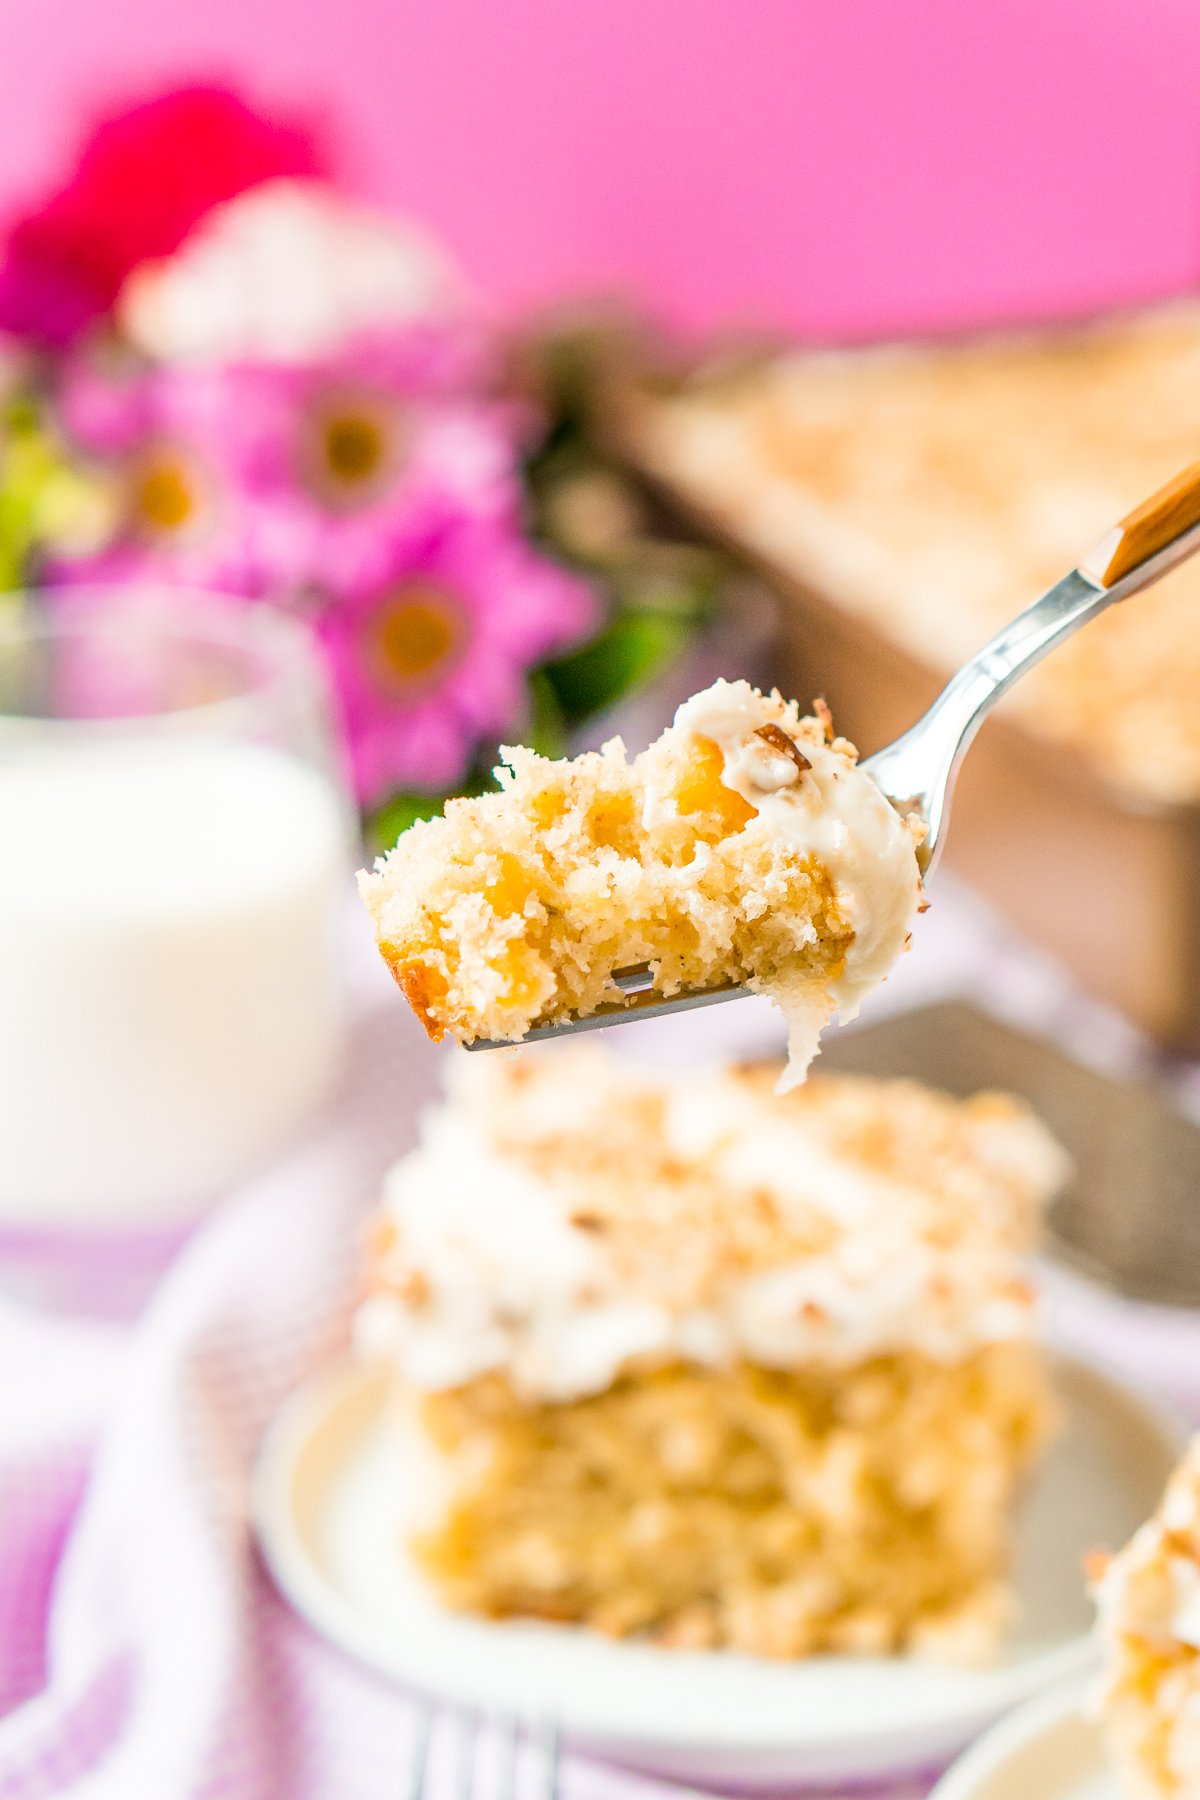 Close up photo of a fork with a bite of hummingbird cake on it.